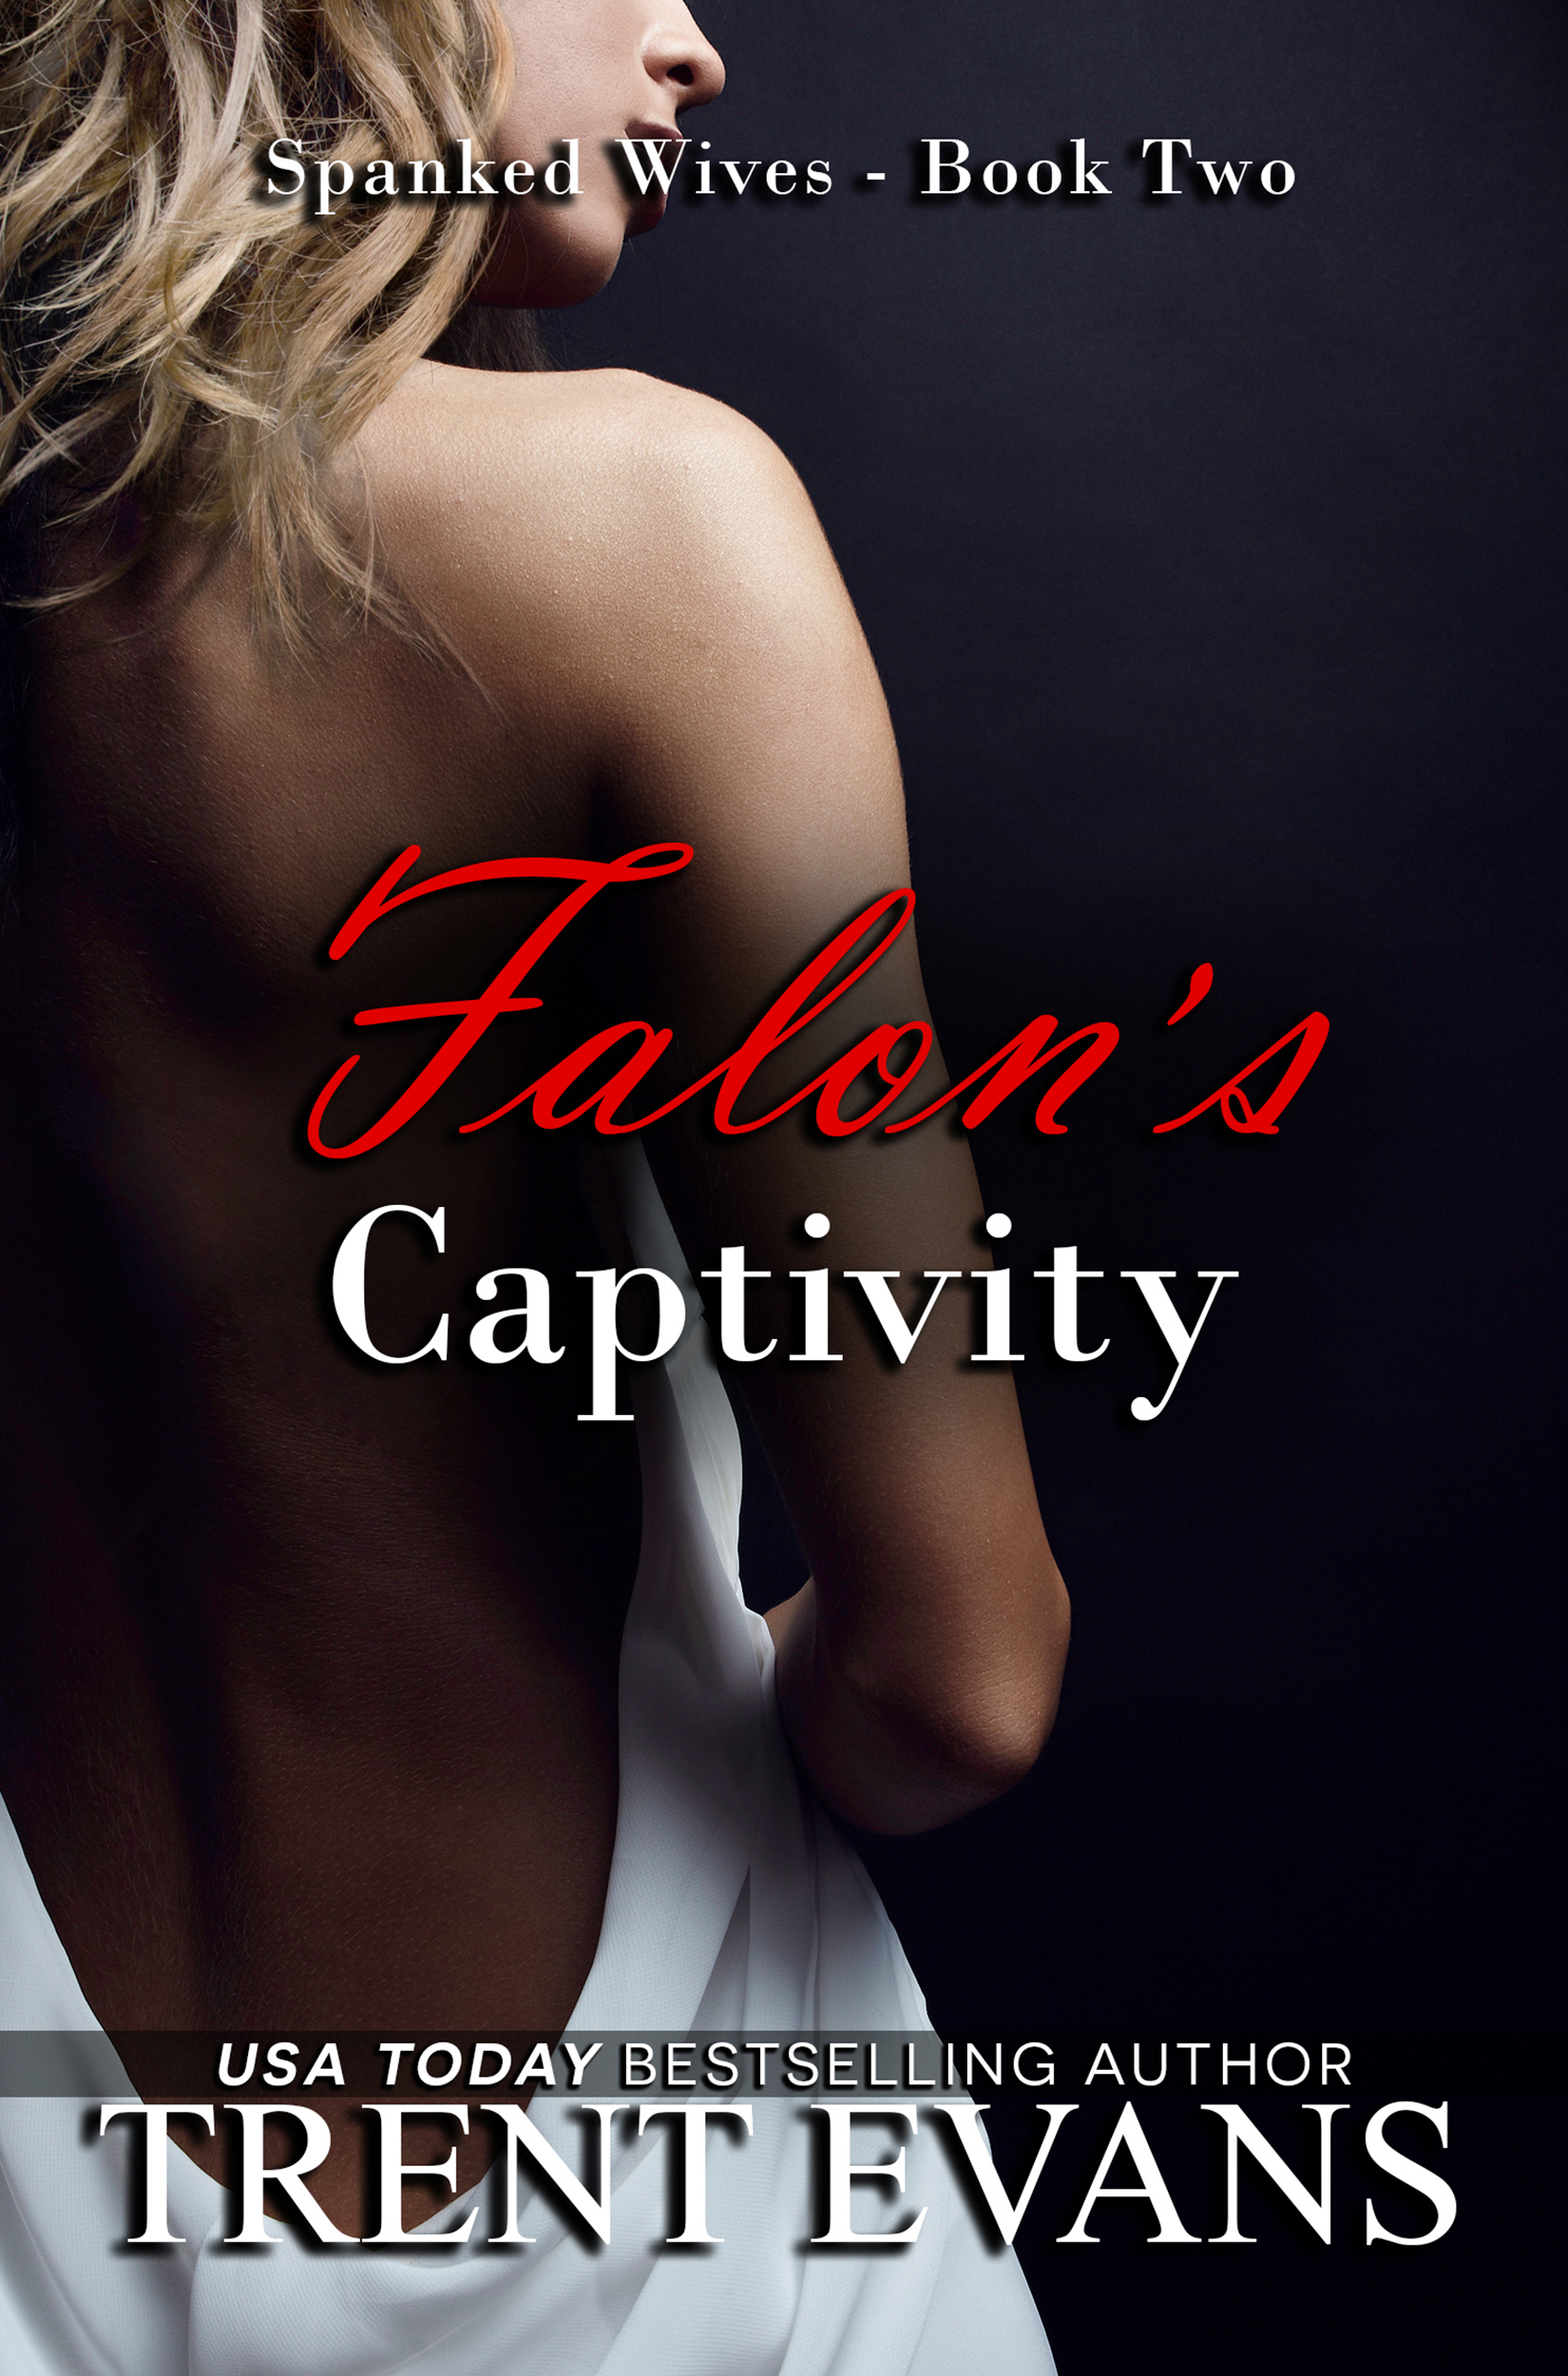 Falon's Captivity